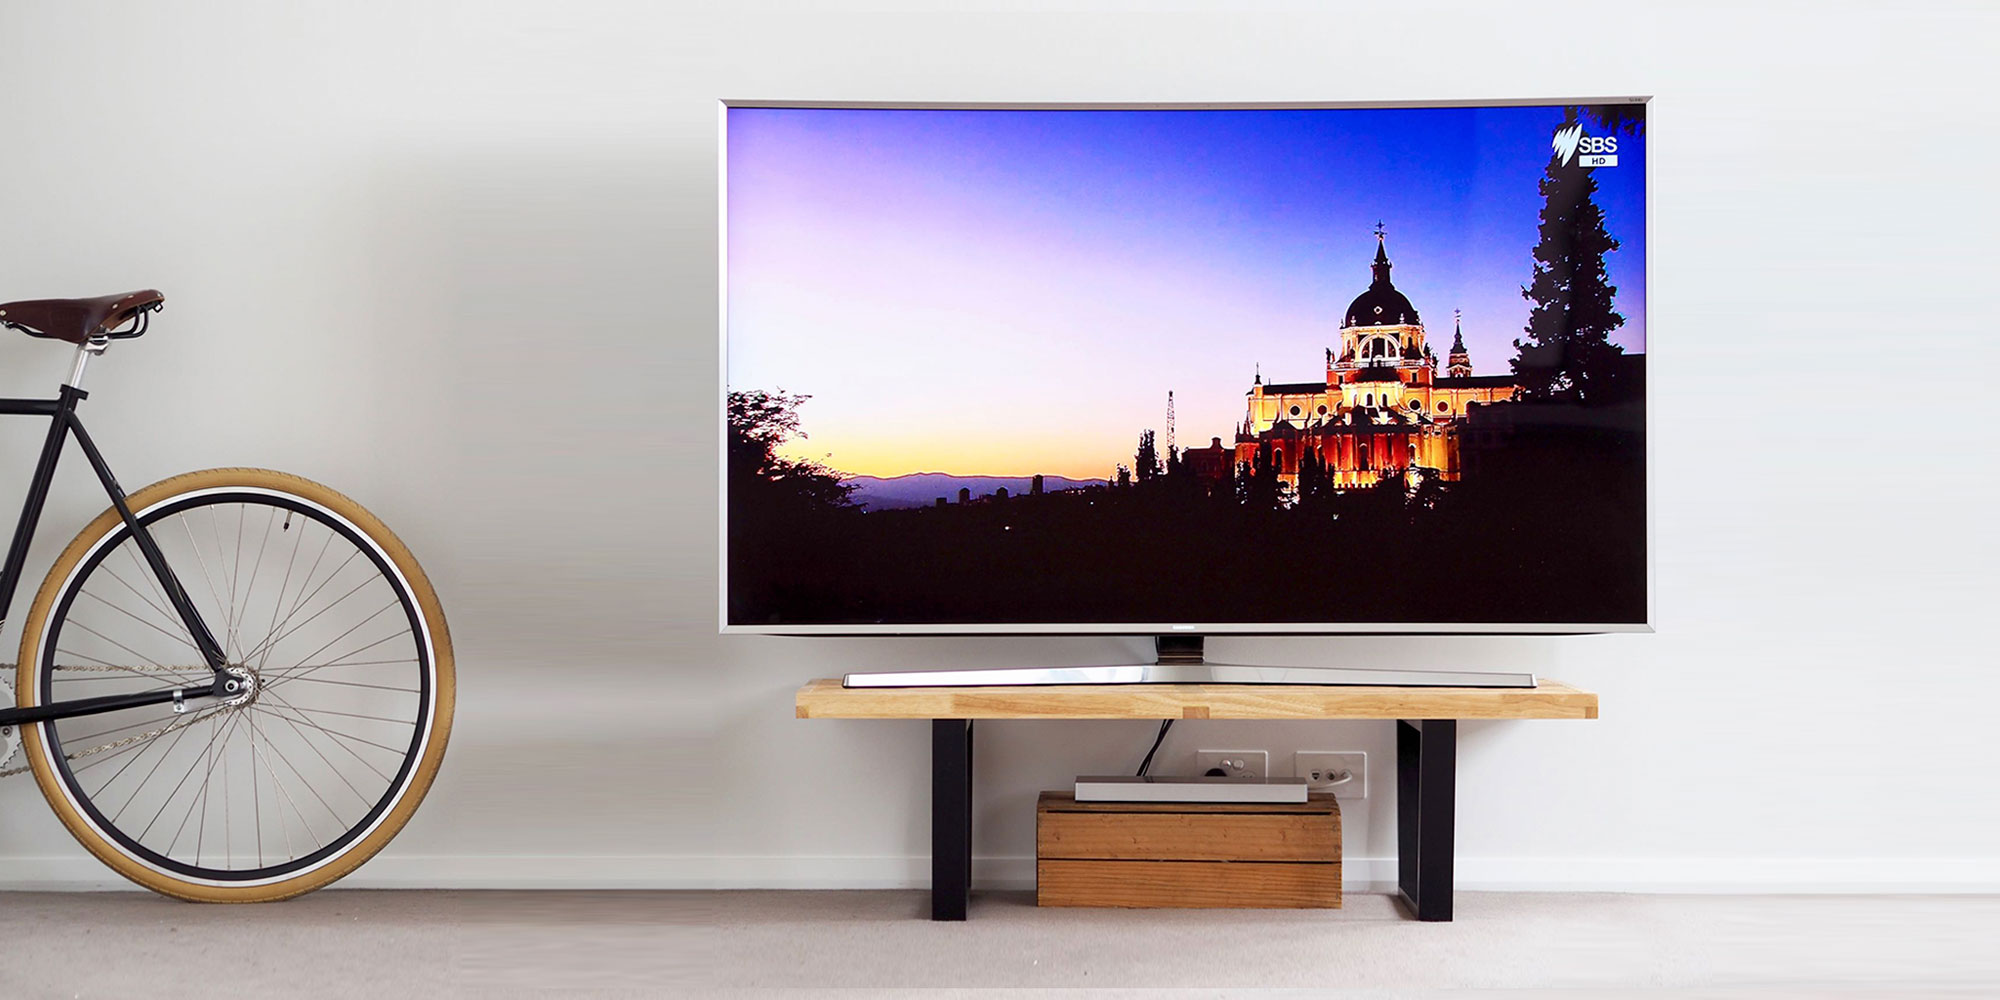 Samsung Series 9 65 inch JS9500 Curved 4K SUHD TV